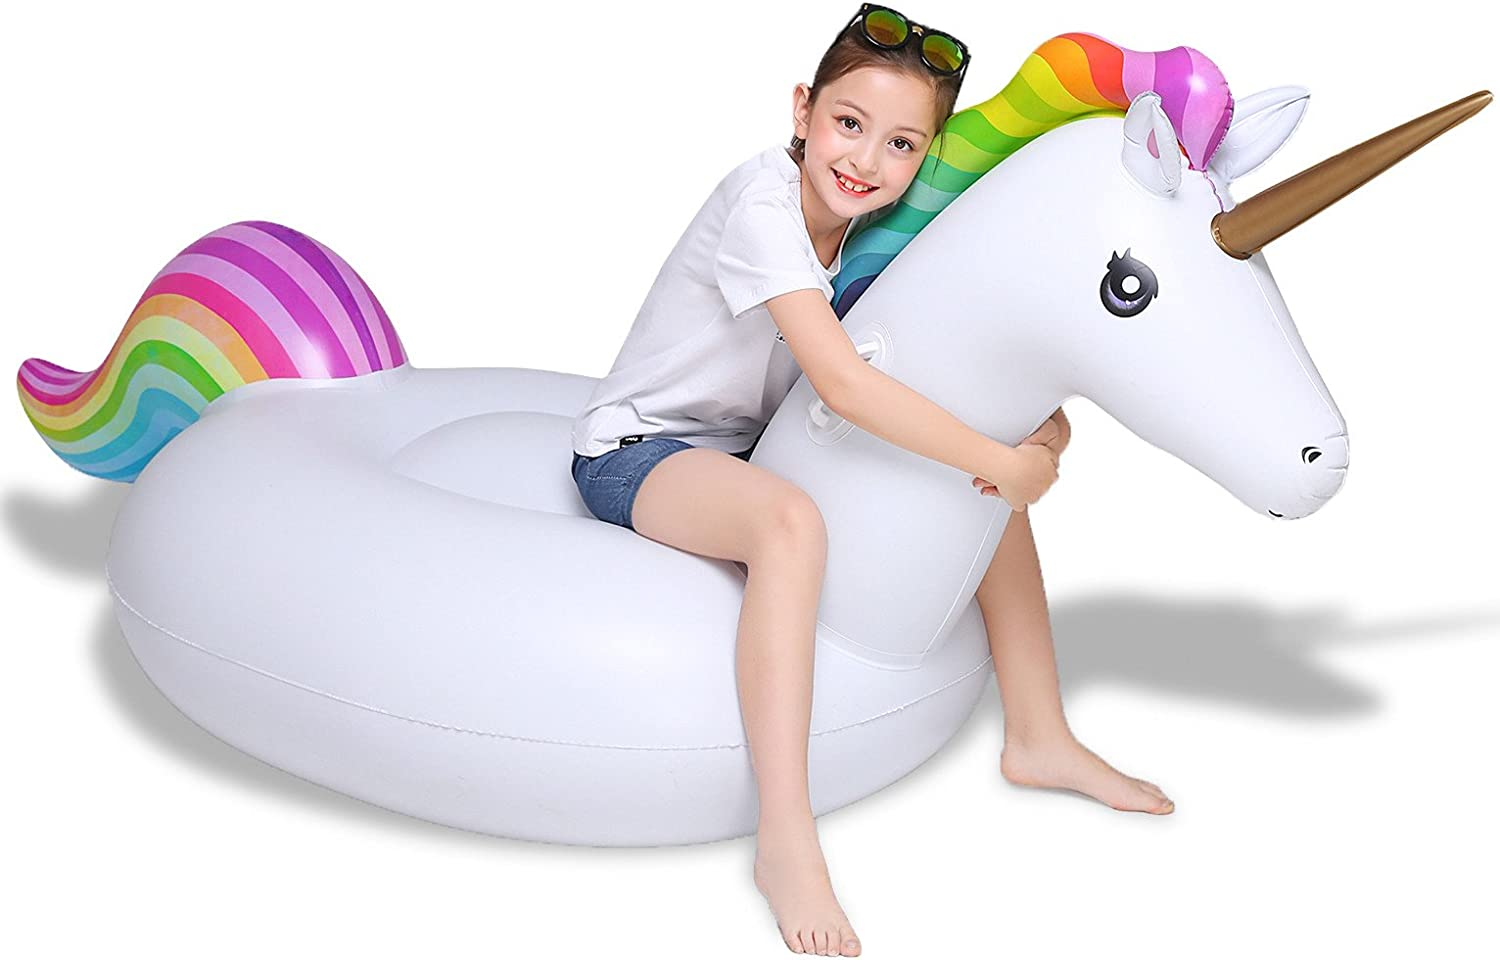 Top 15 Best Unicorn Toys And Gift For Girls in 2020 3